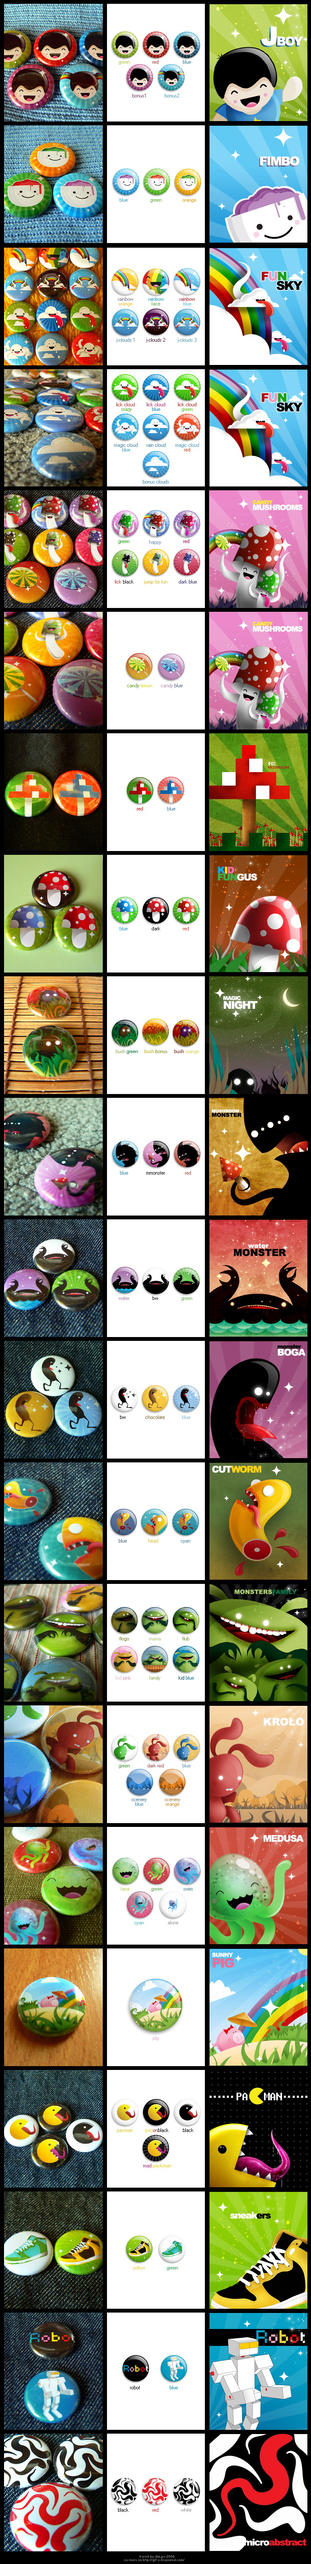 25mm button badges by dimpoart